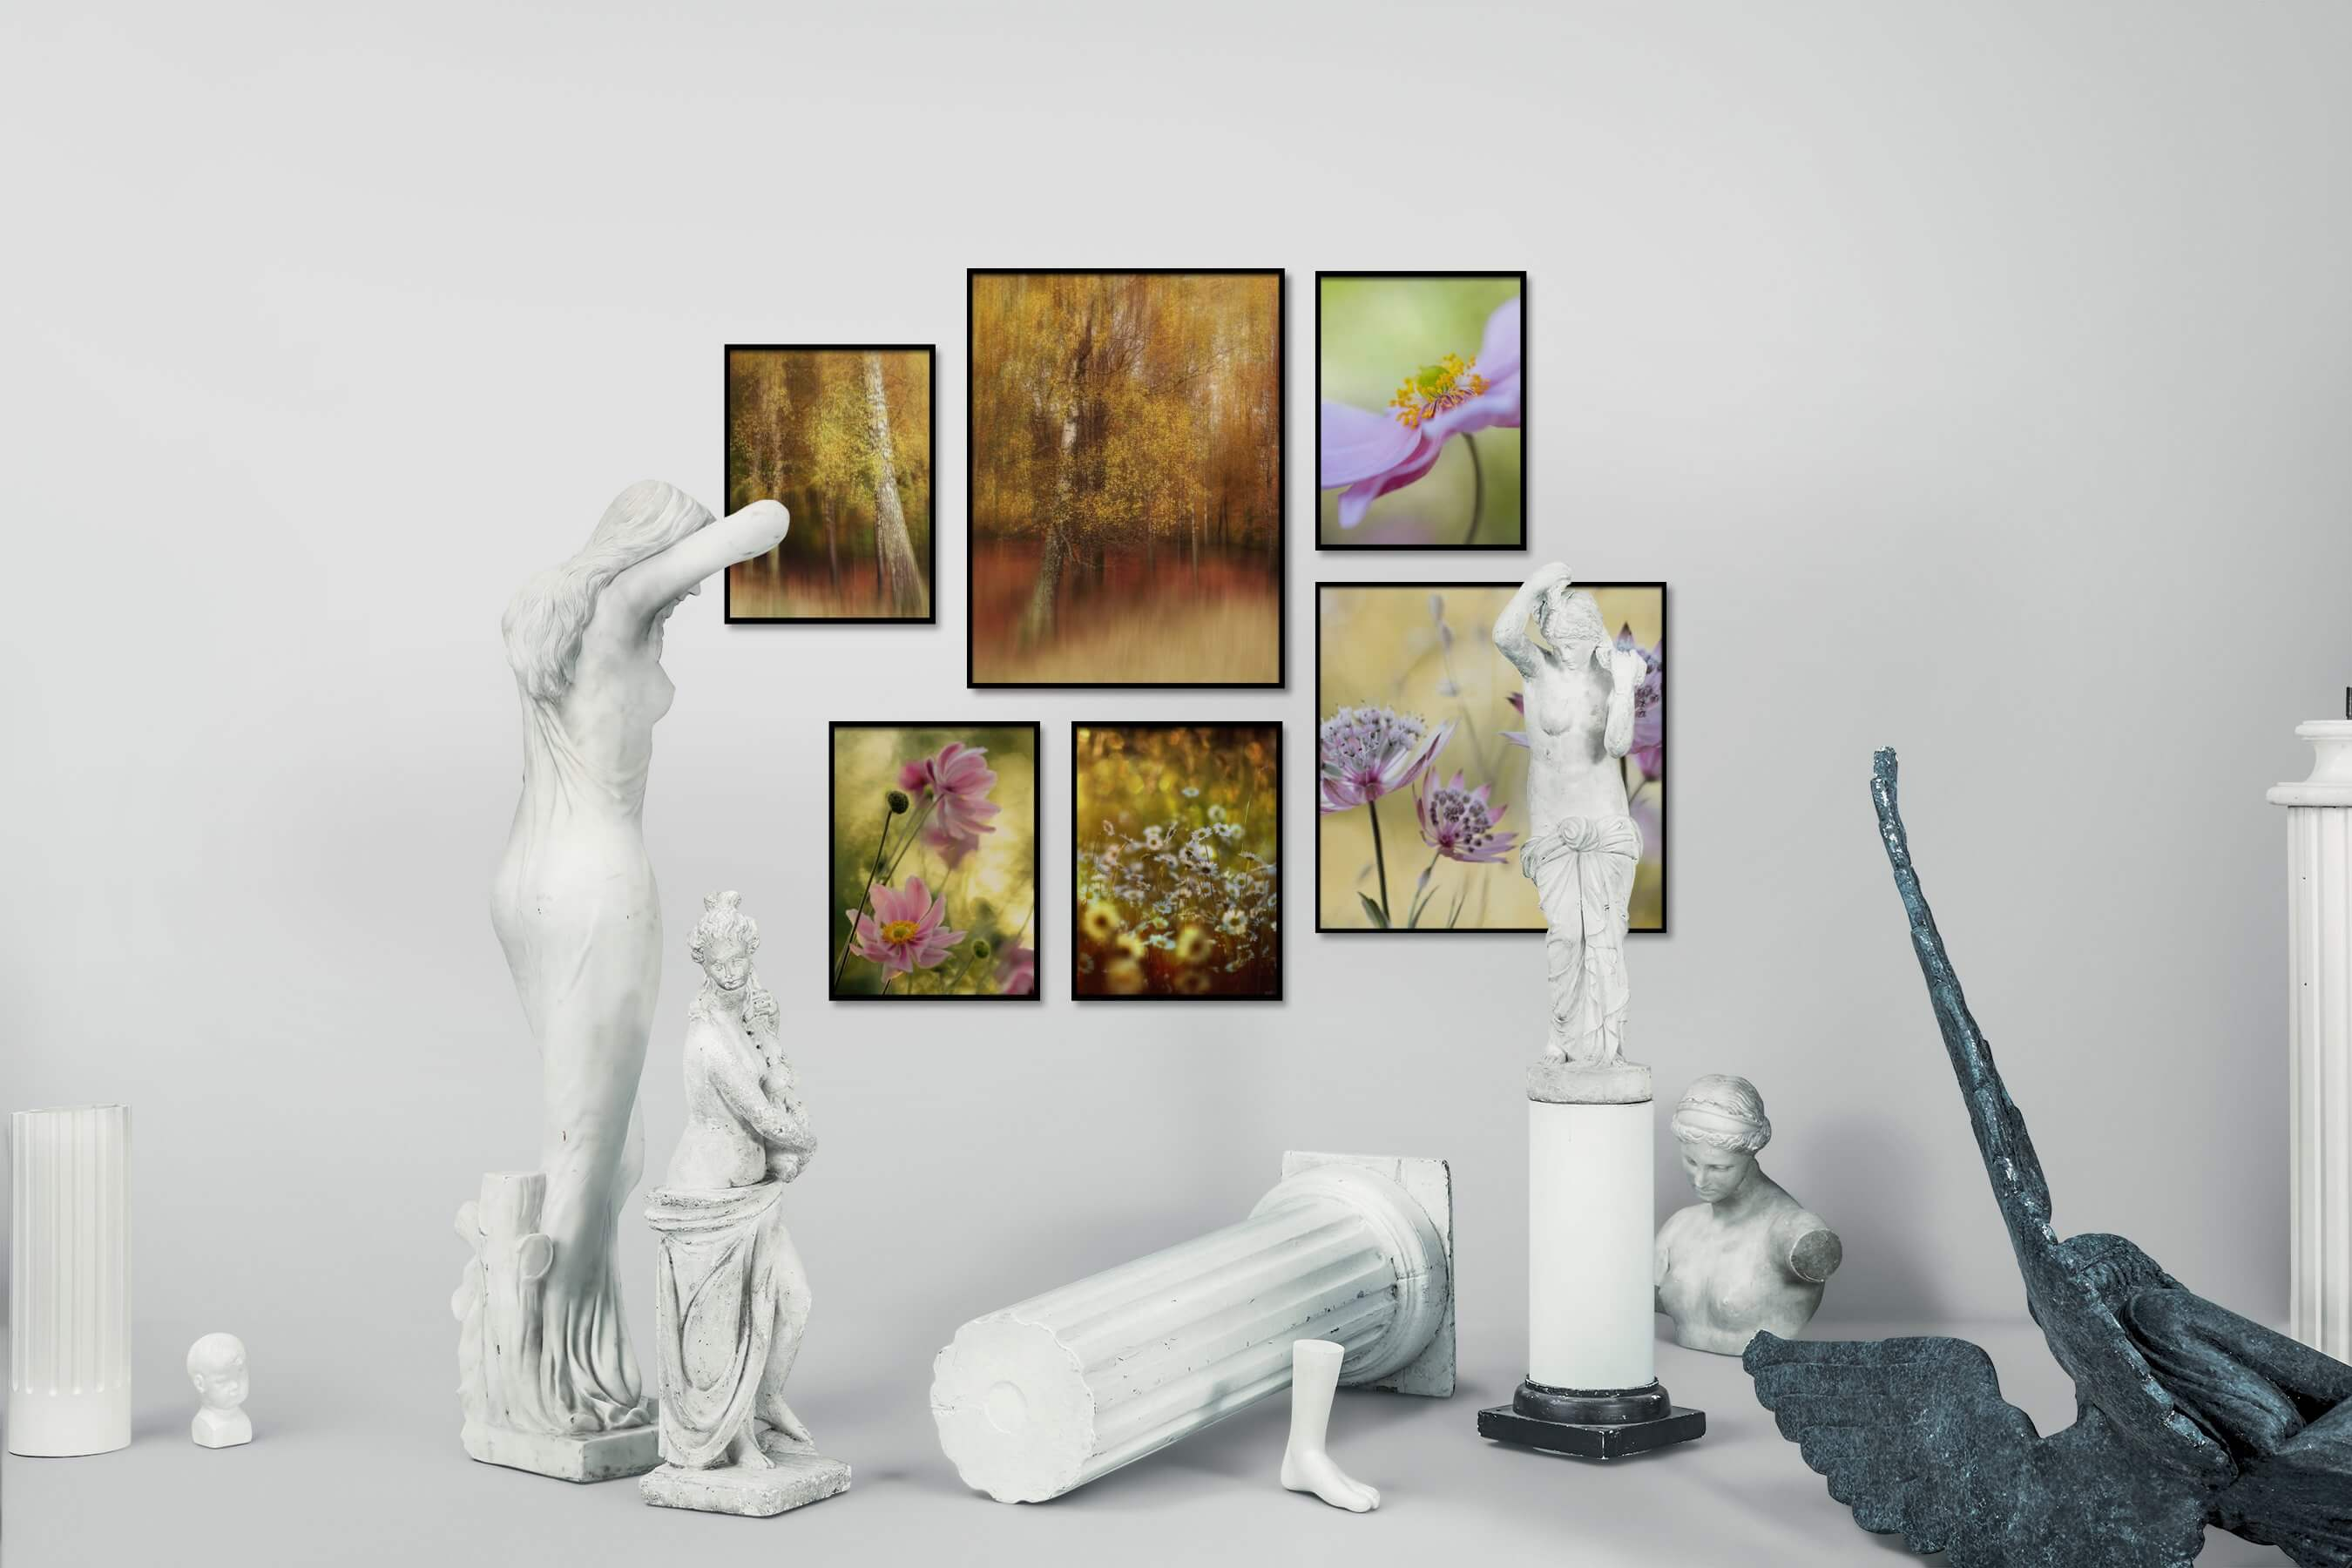 Gallery wall idea with six framed pictures arranged on a wall depicting For the Moderate, Nature, and Flowers & Plants